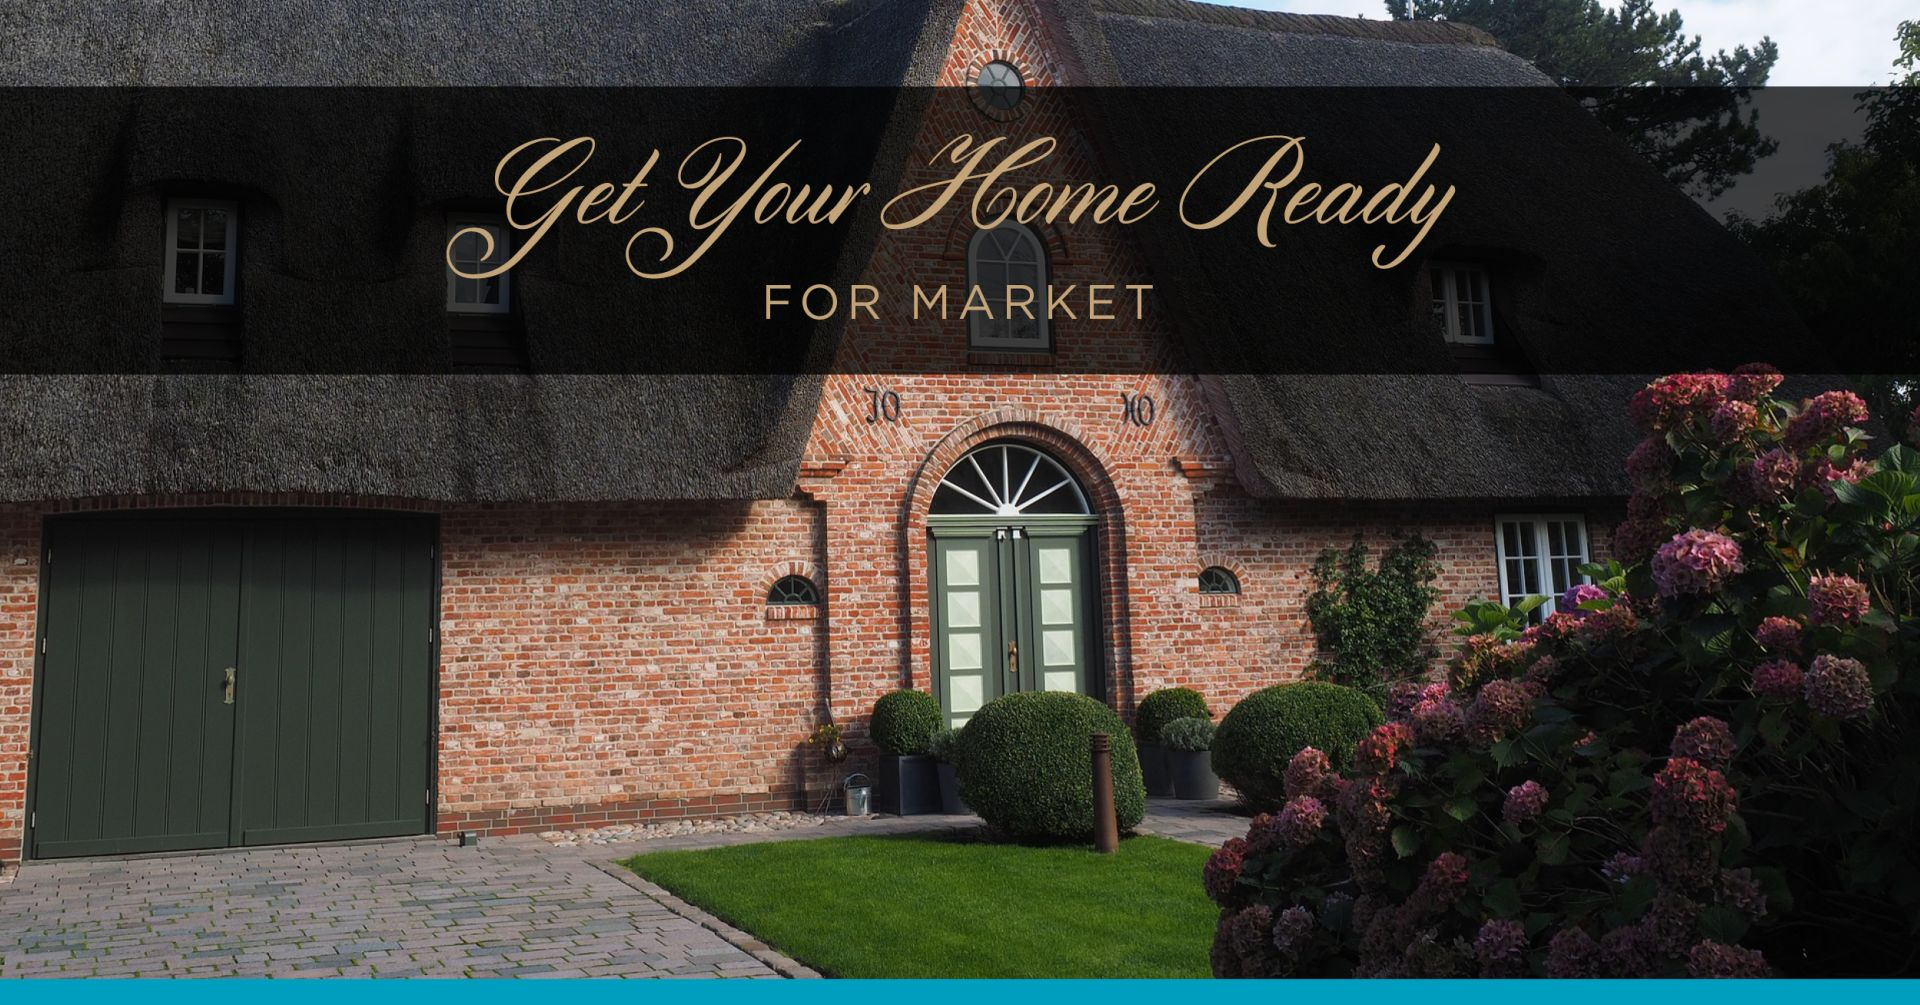 Get Your Home Ready For Market